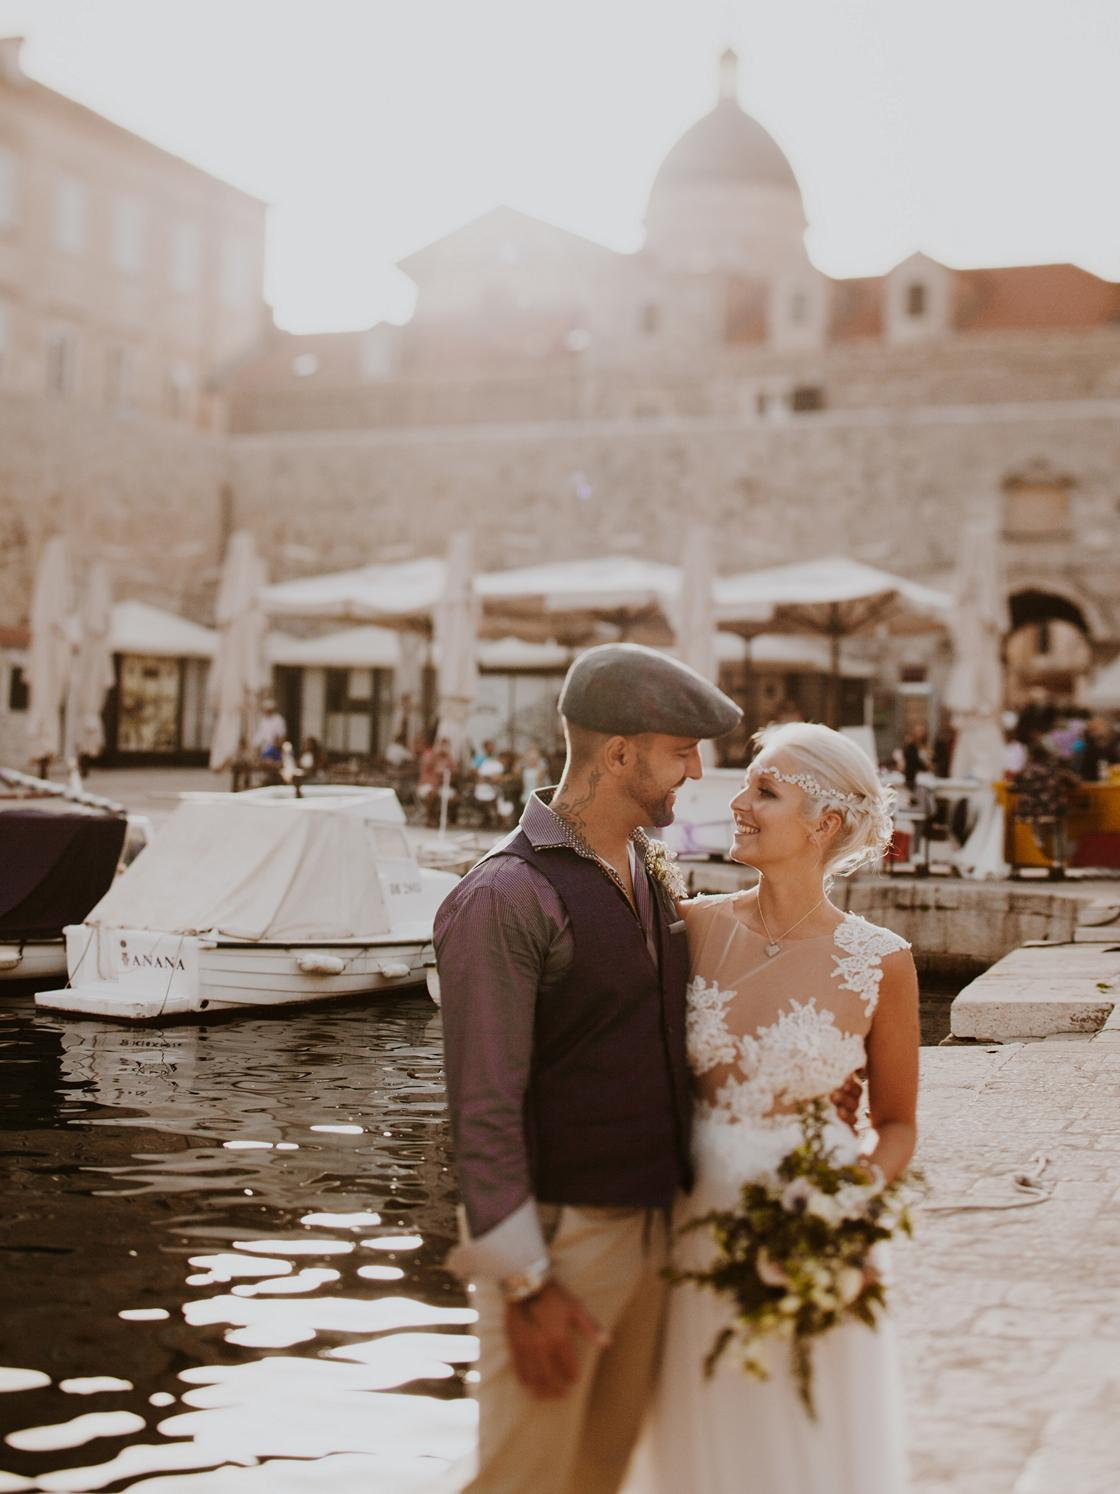 dubrovnik-wedding-photographer-croatia-destination-weddings-jenna-rich053